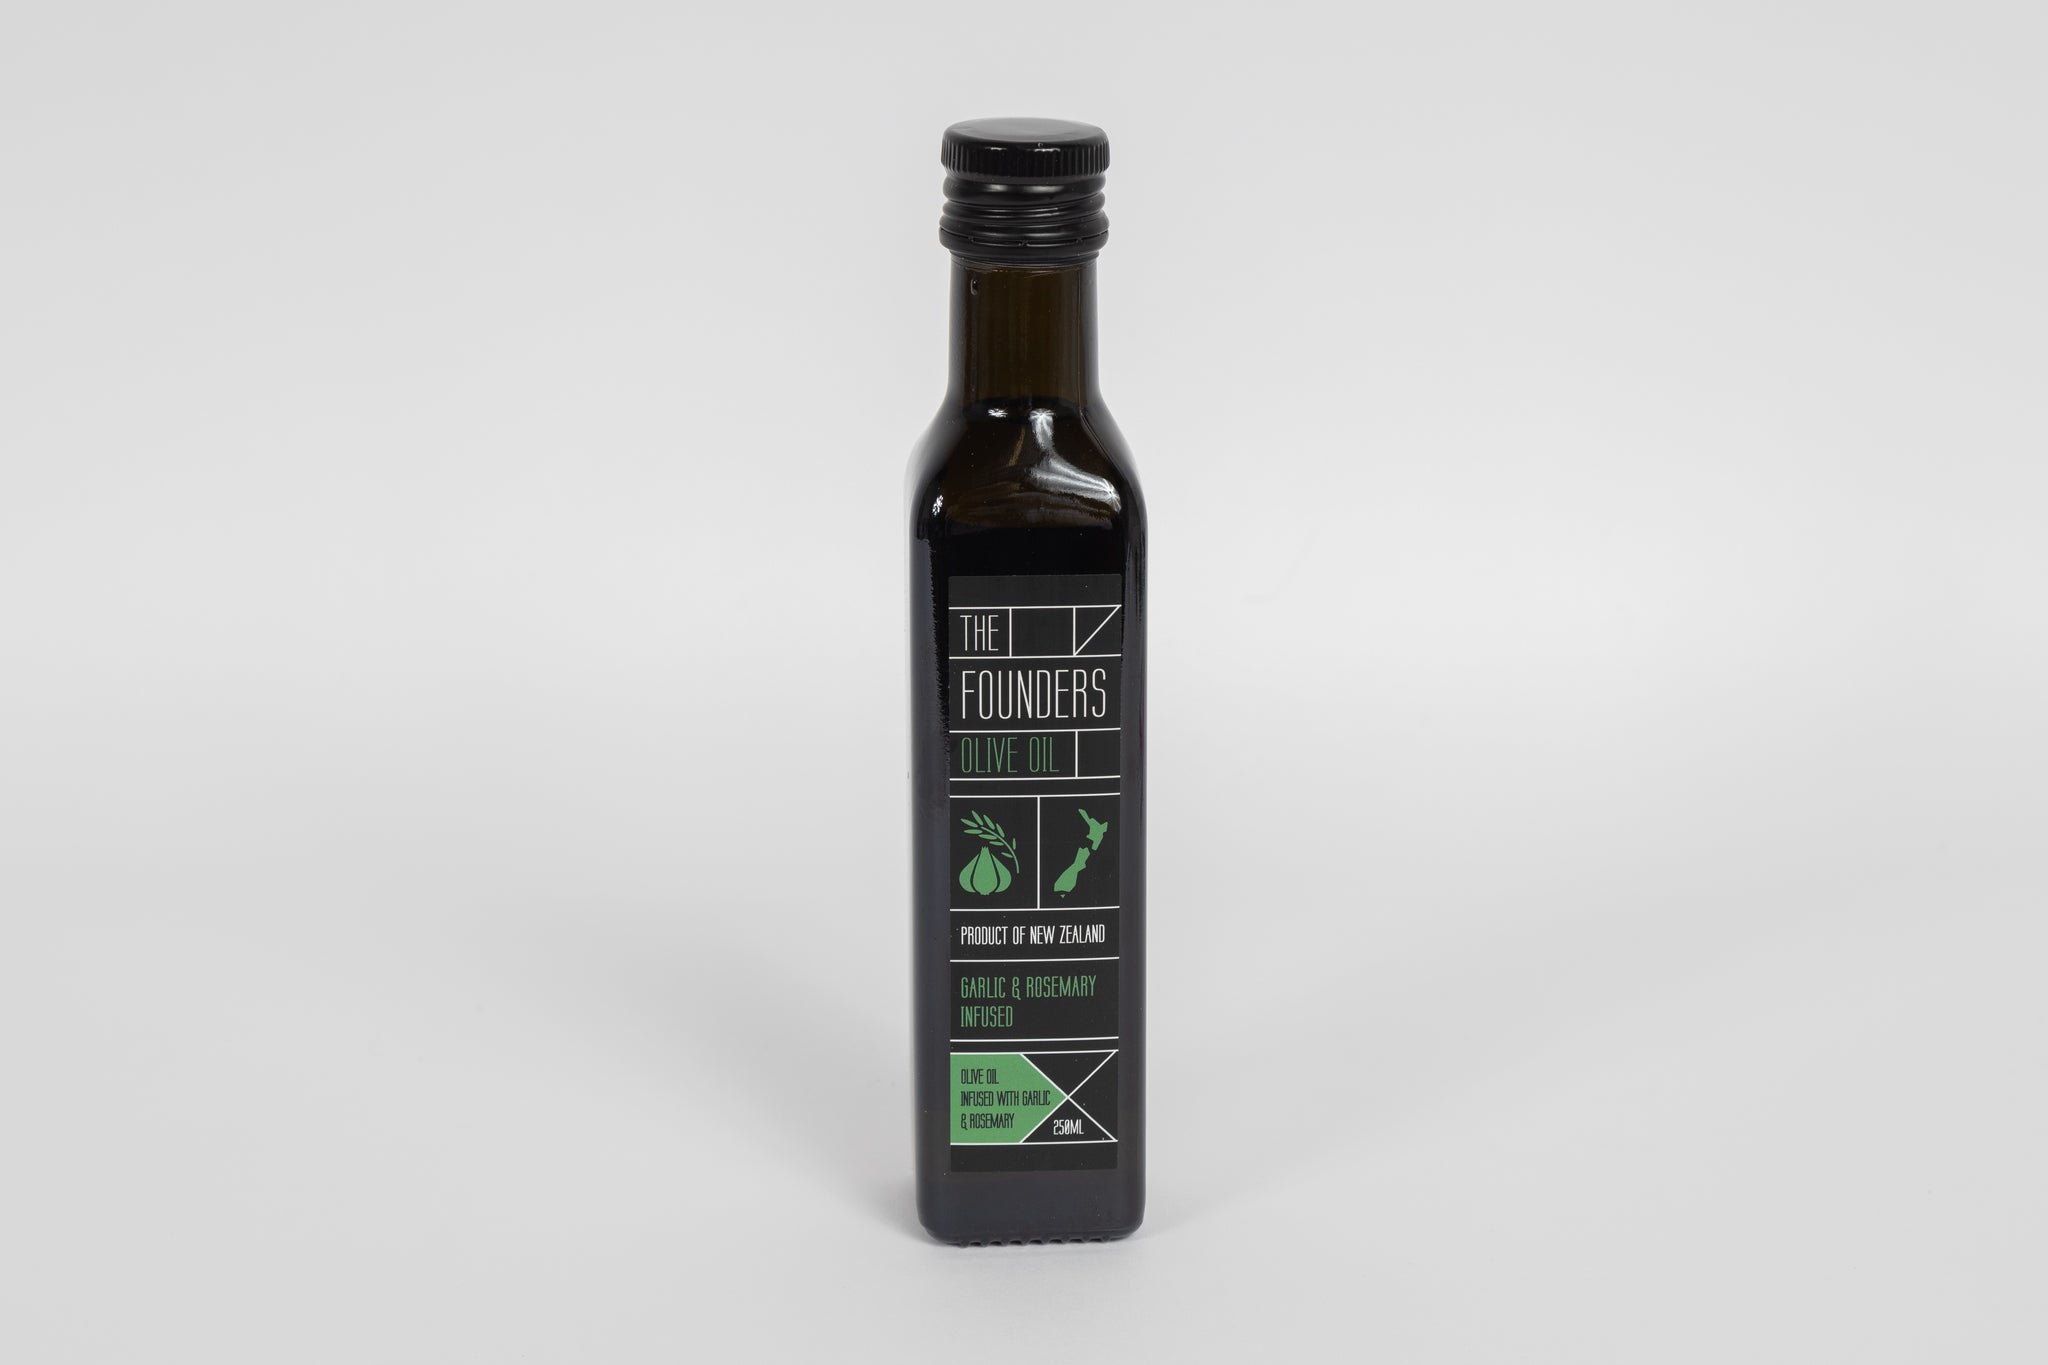 The Founders – Garlic and Rosemary infused Olive Oil